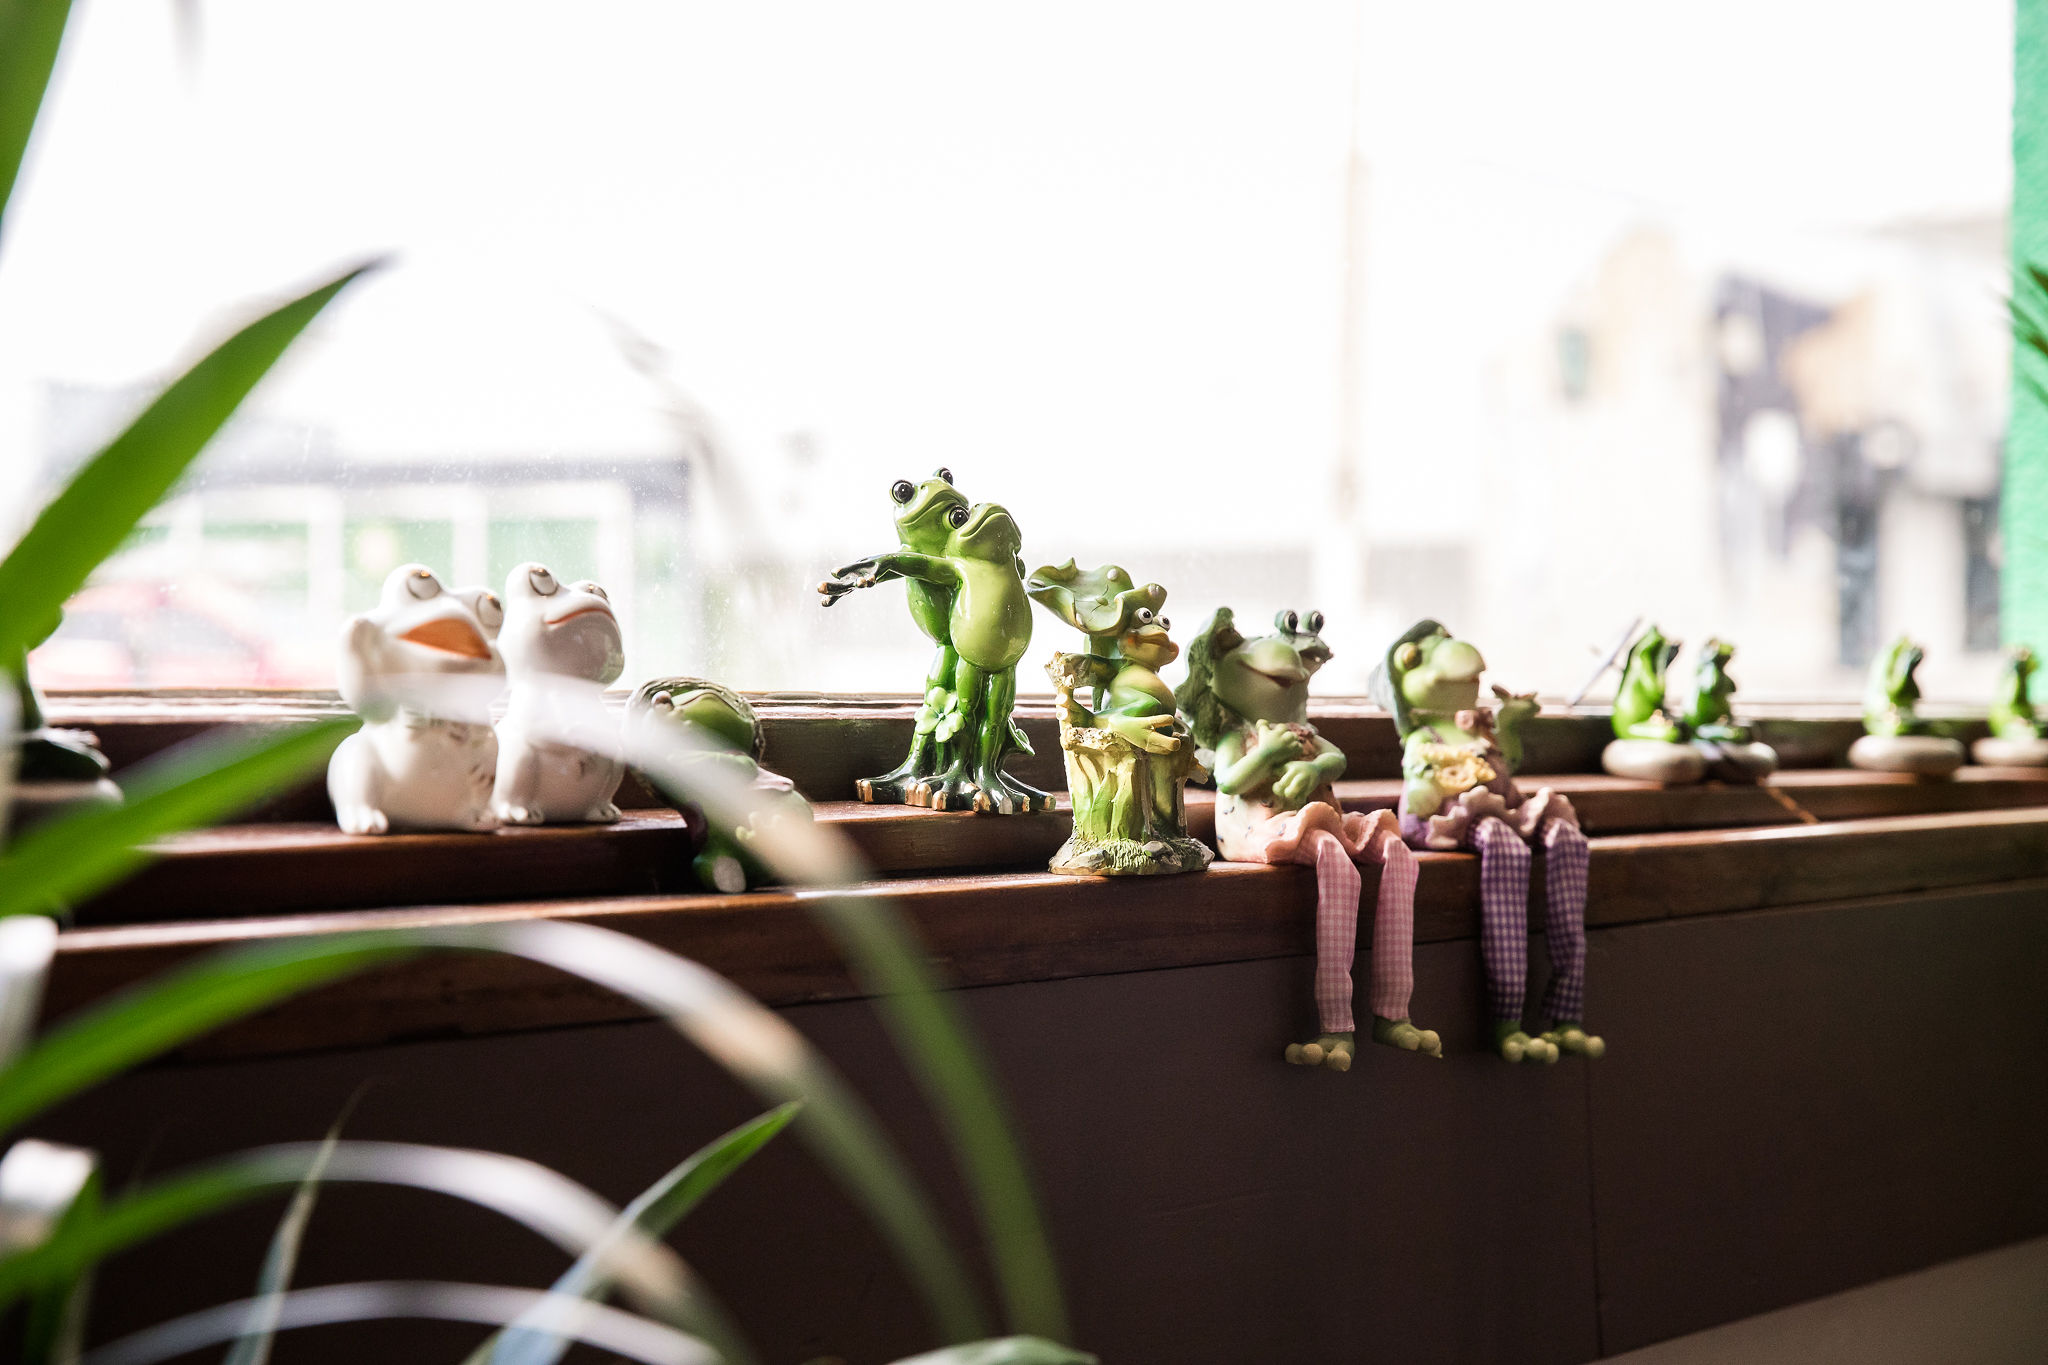 Frogs at the frog